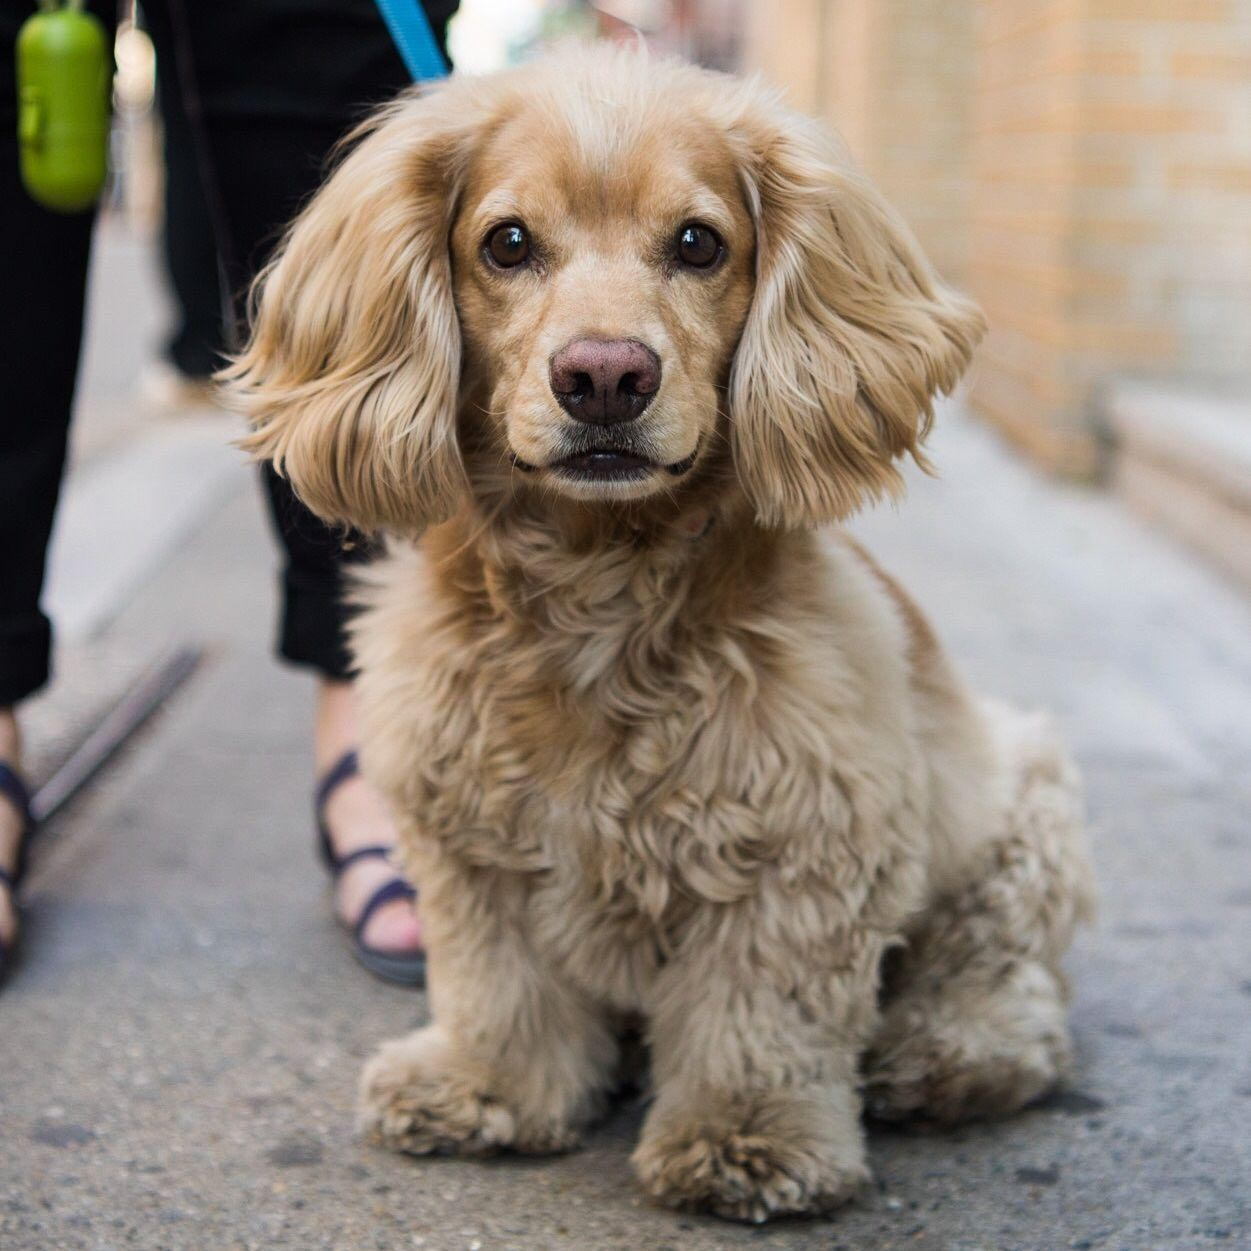 Dachshund Poodle Mix for Adoption